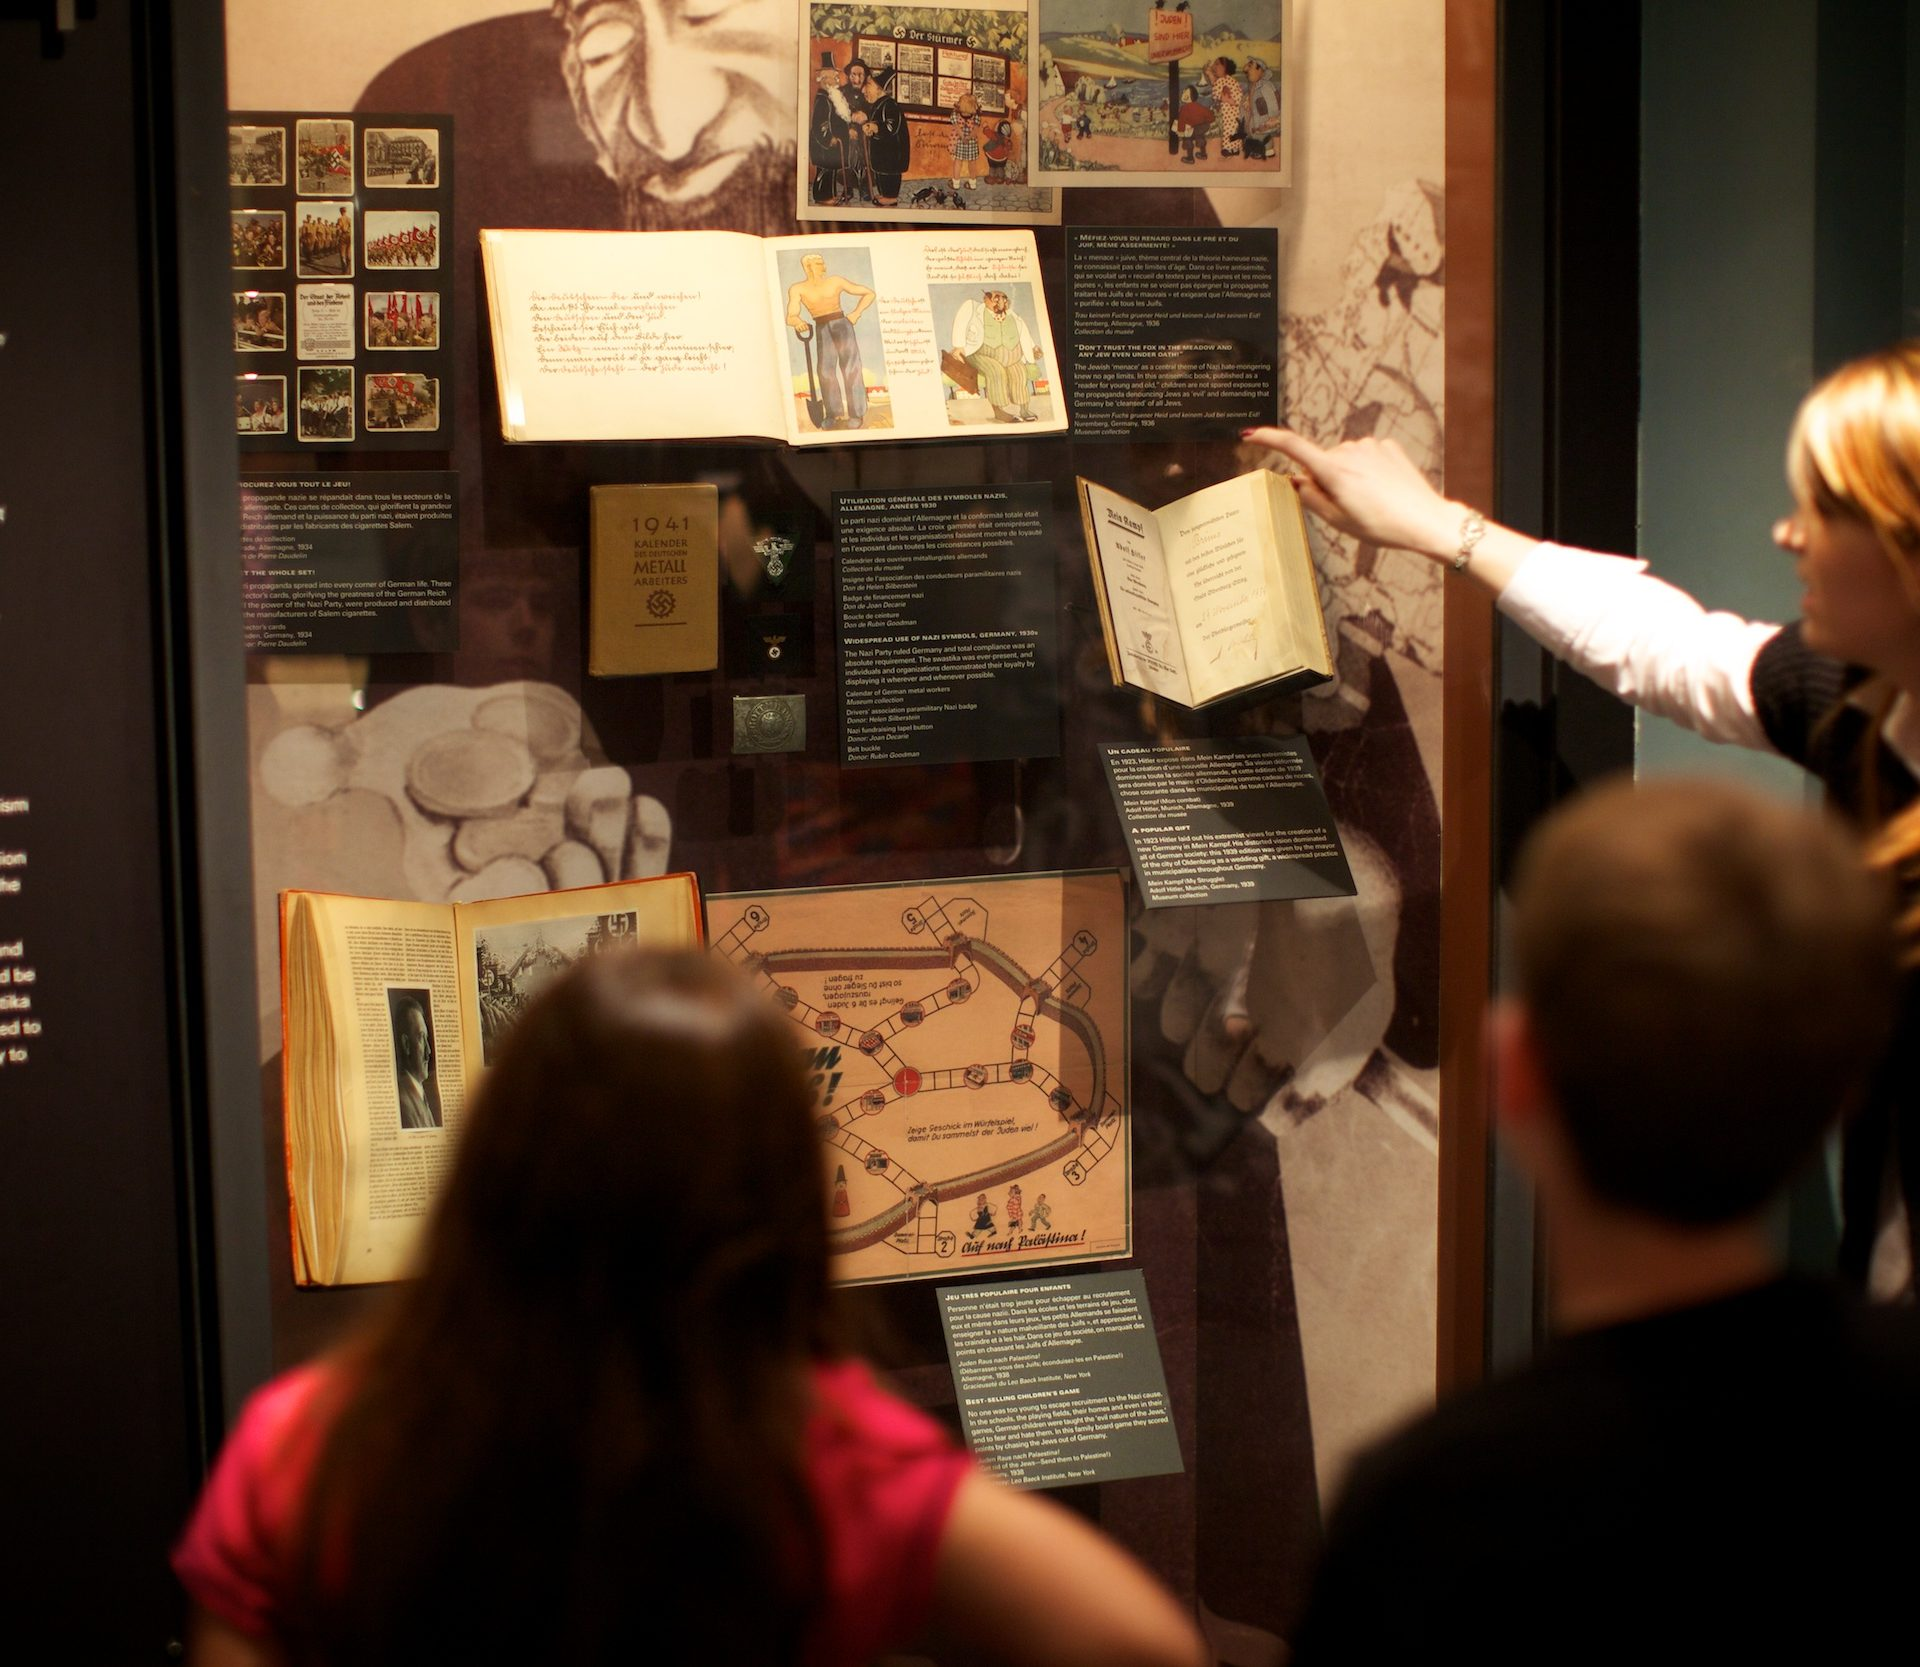 Display about Nazi propaganda and indoctrination of youth. Photo: Vadim Daniel